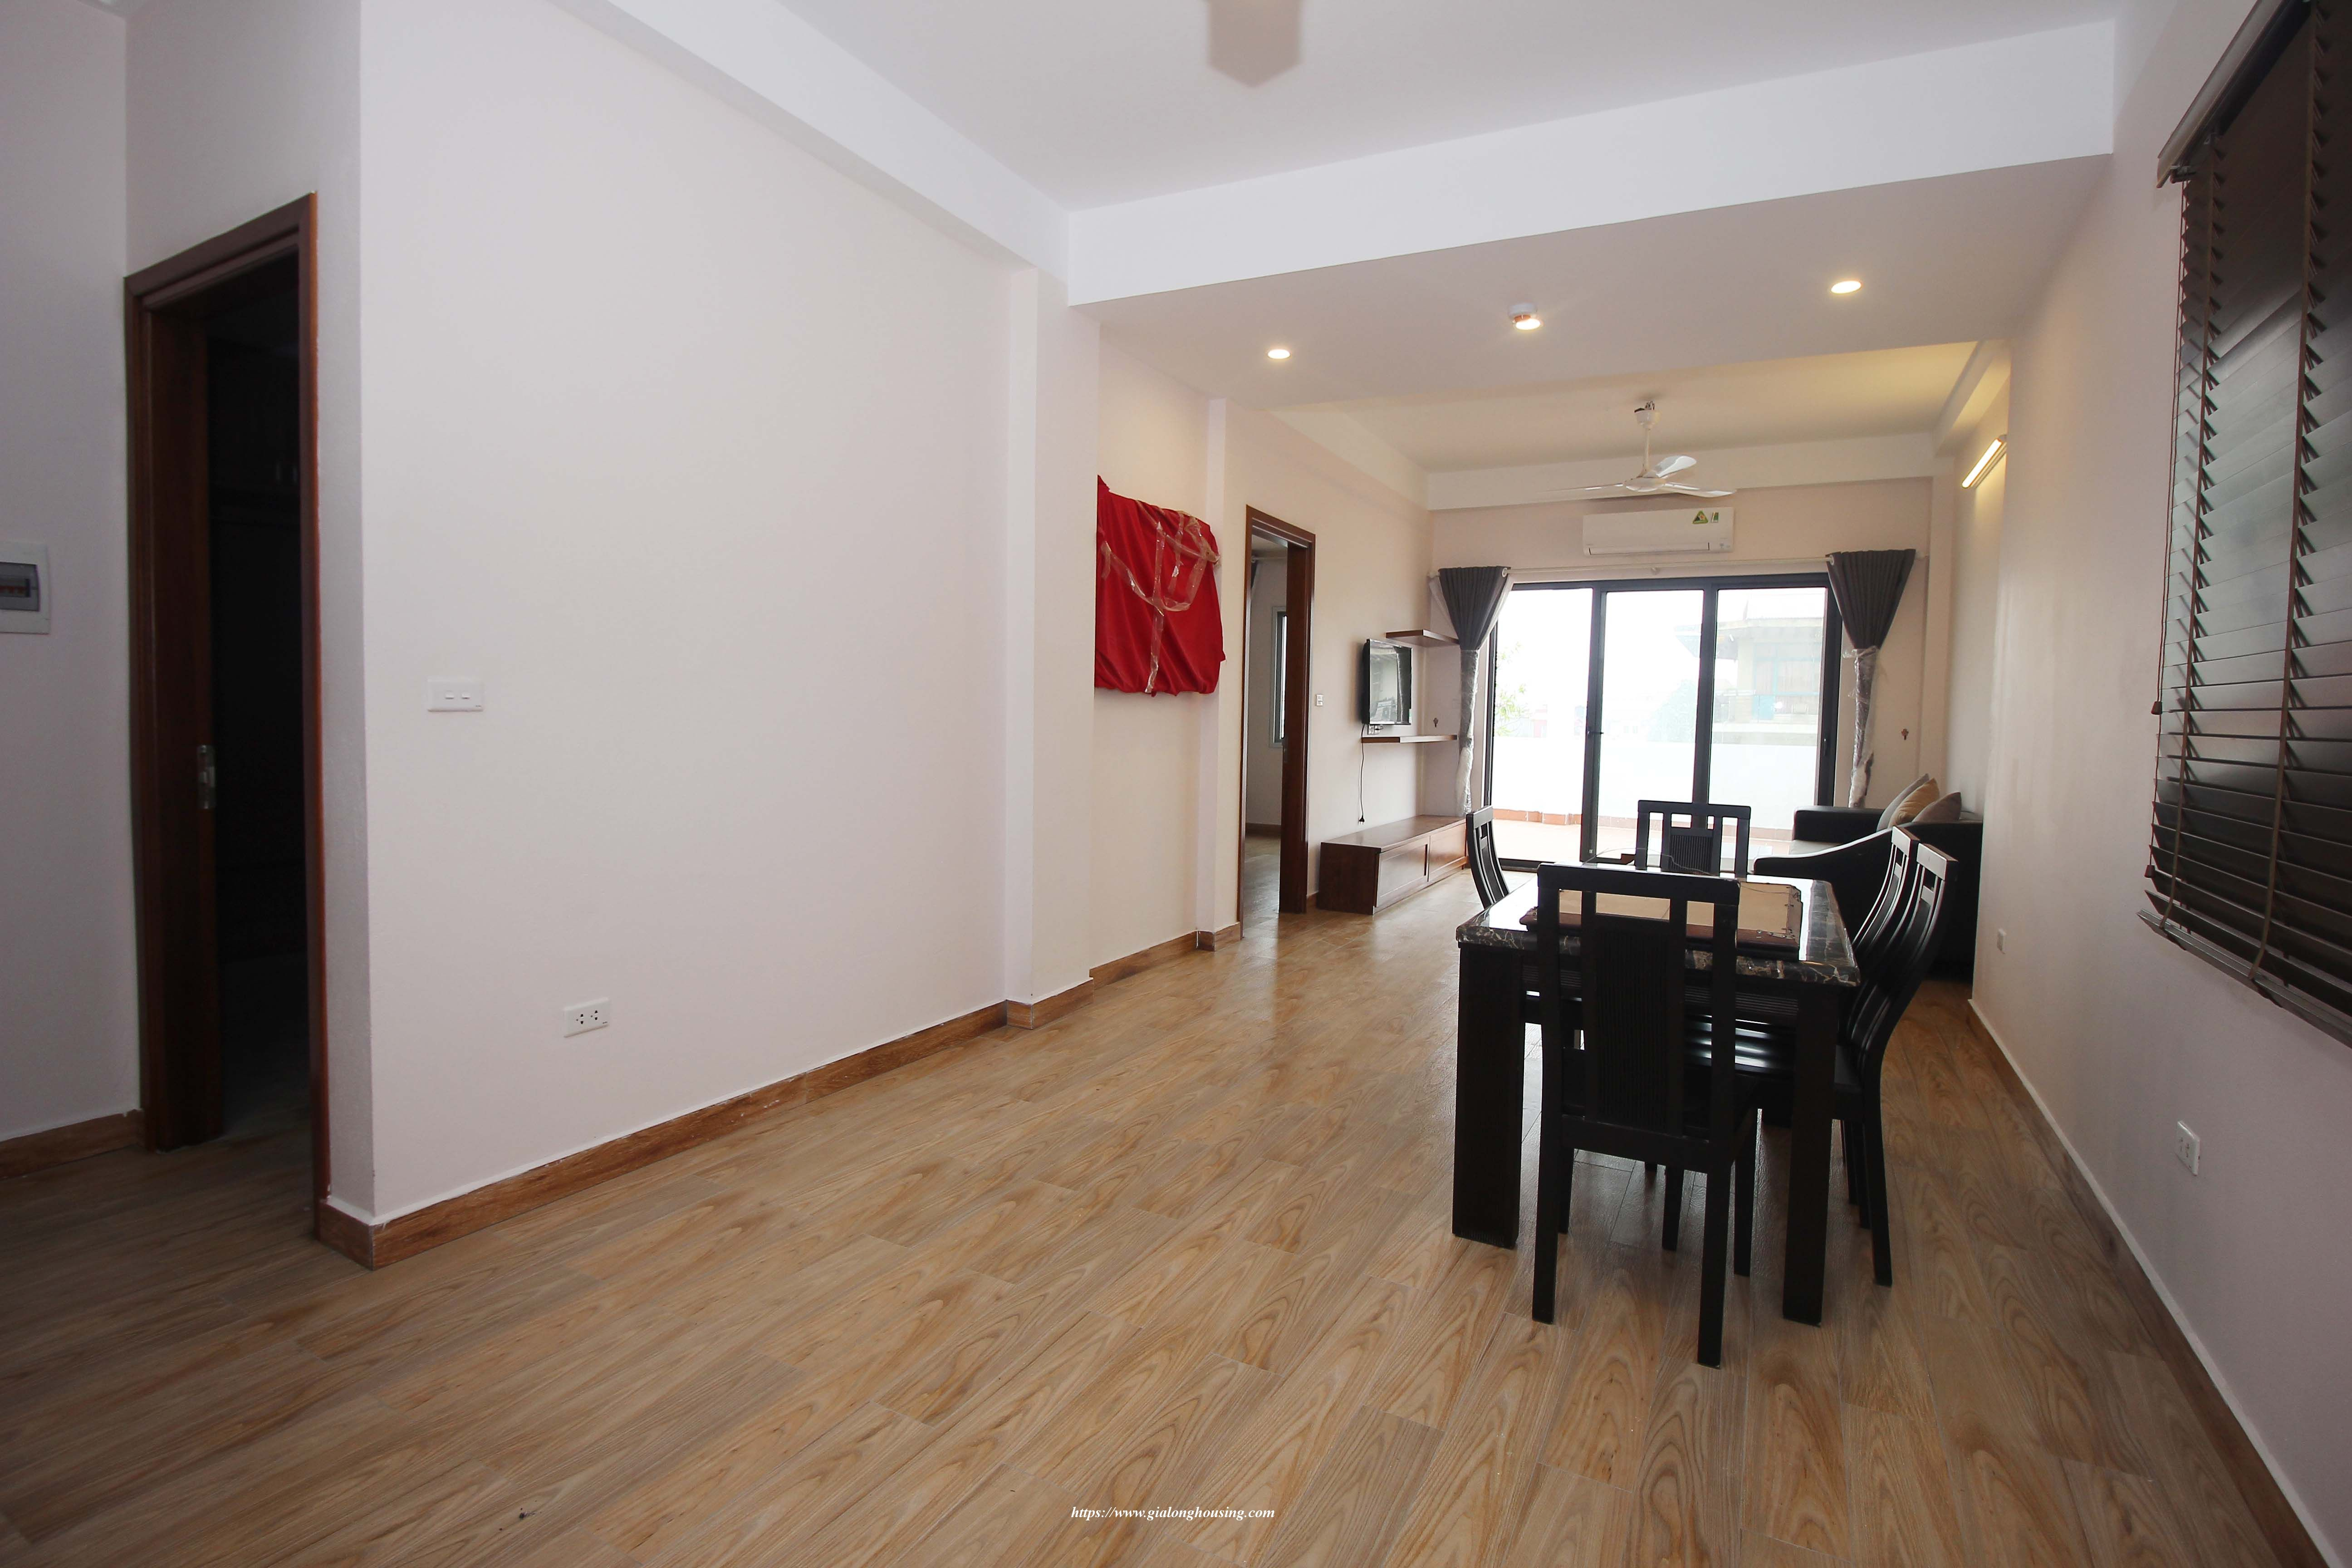 Brand new apartment with huge balcony in Hoang Hoa Tham